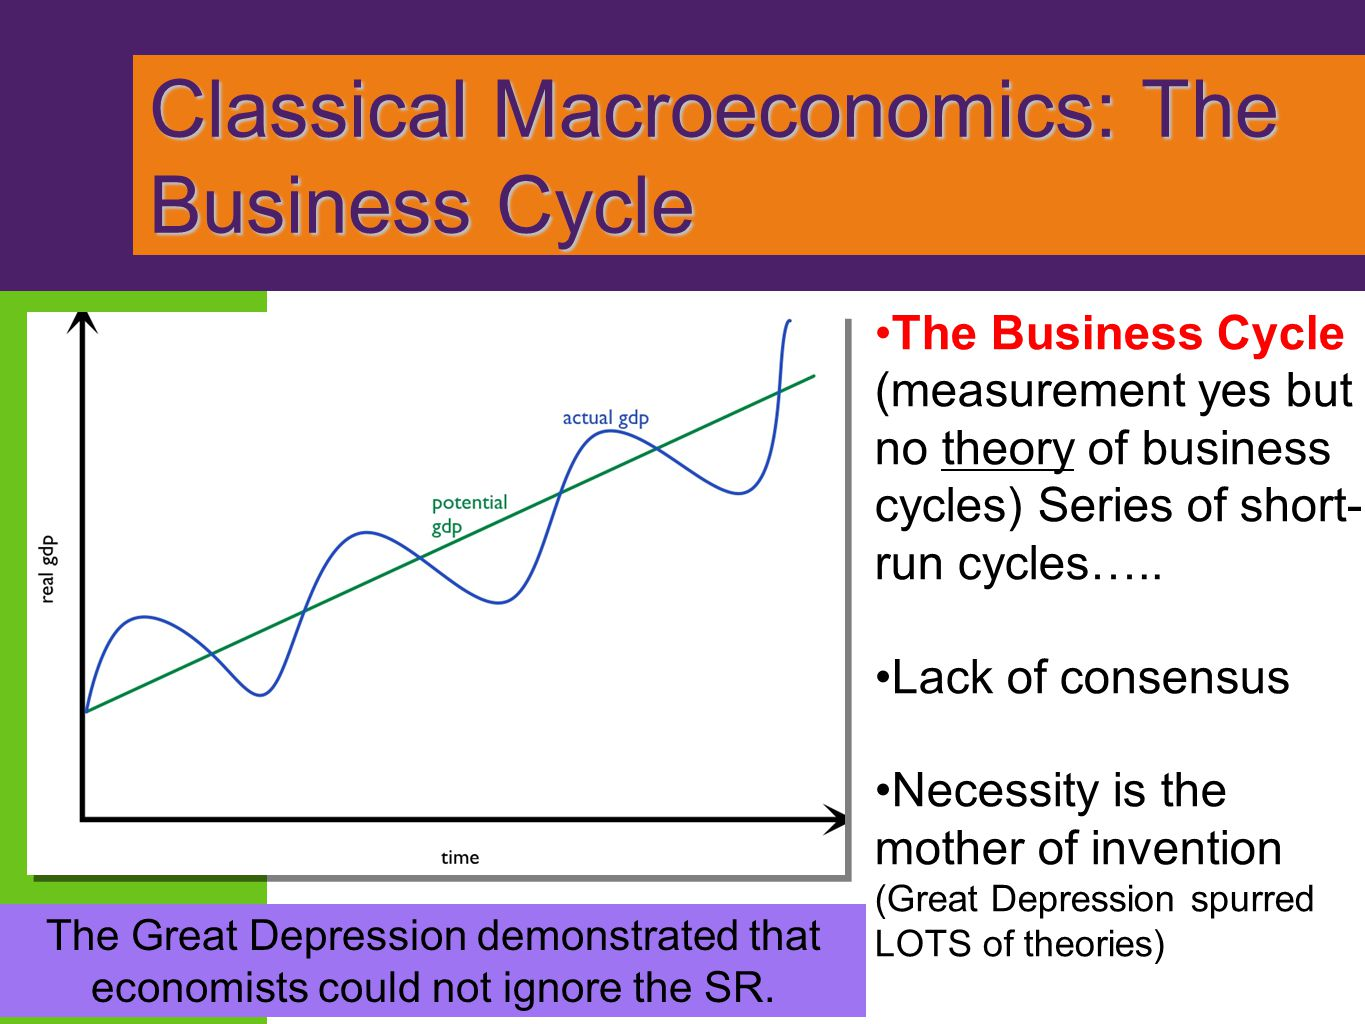 Classical Macroeconomics: The Business Cycle Classical Macroeconomics: The Business Cycle The Business Cycle (measurement yes but no theory of busines